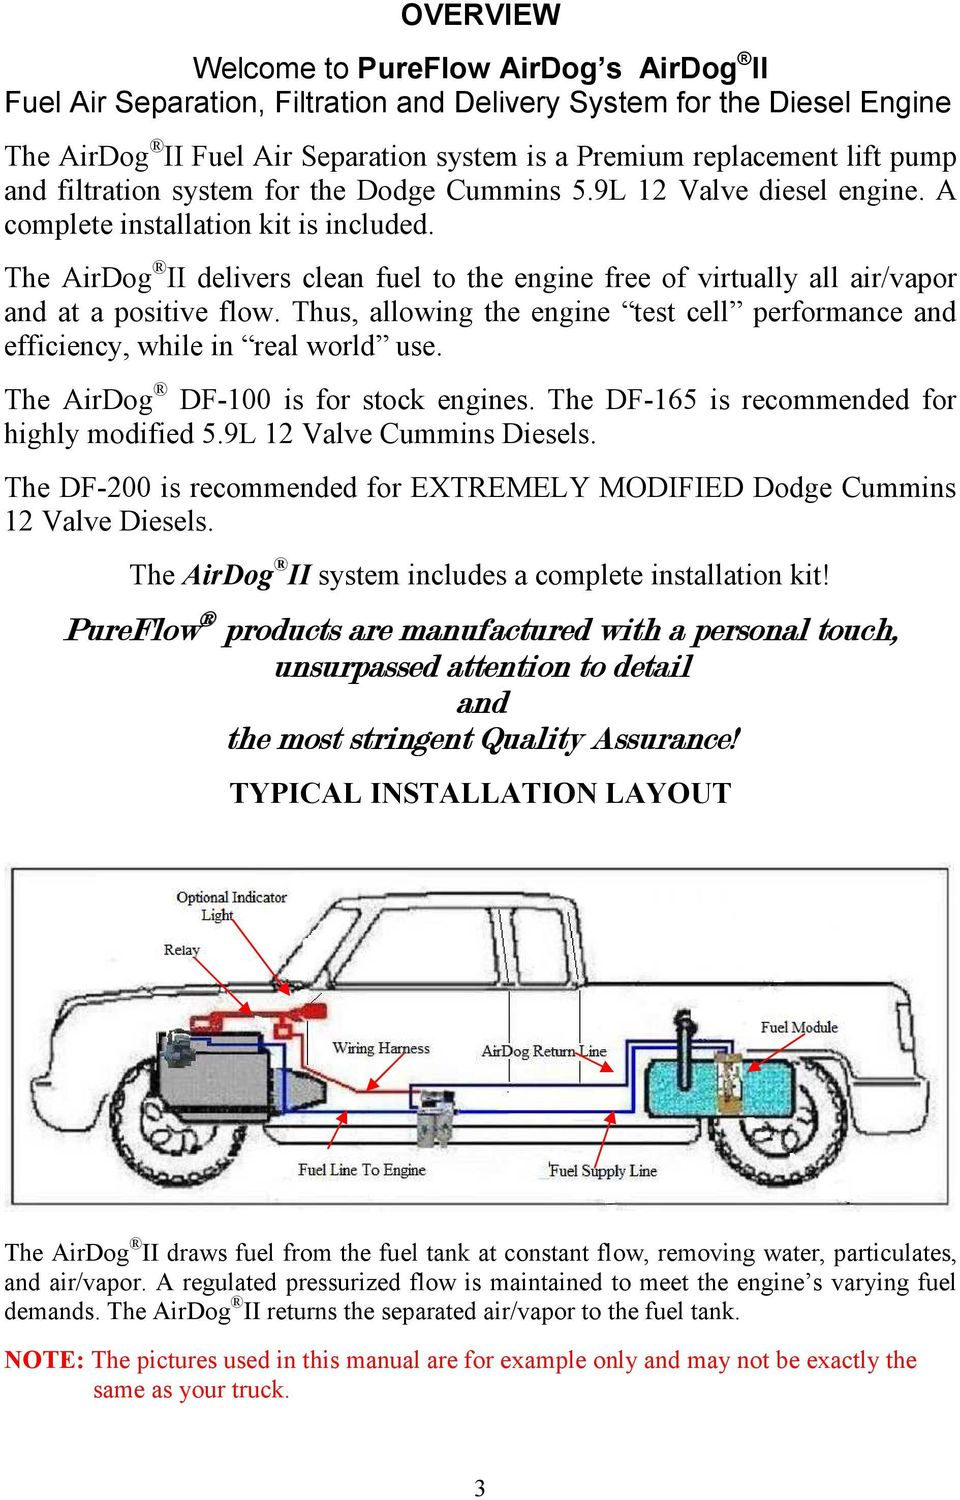 Airdog Wiring Diagrams Df 100 165 200 W Adjustable Regulator Installation Manual The Ii Delivers Clean Fuel To Engine Free Of Virtually All Air Vapor